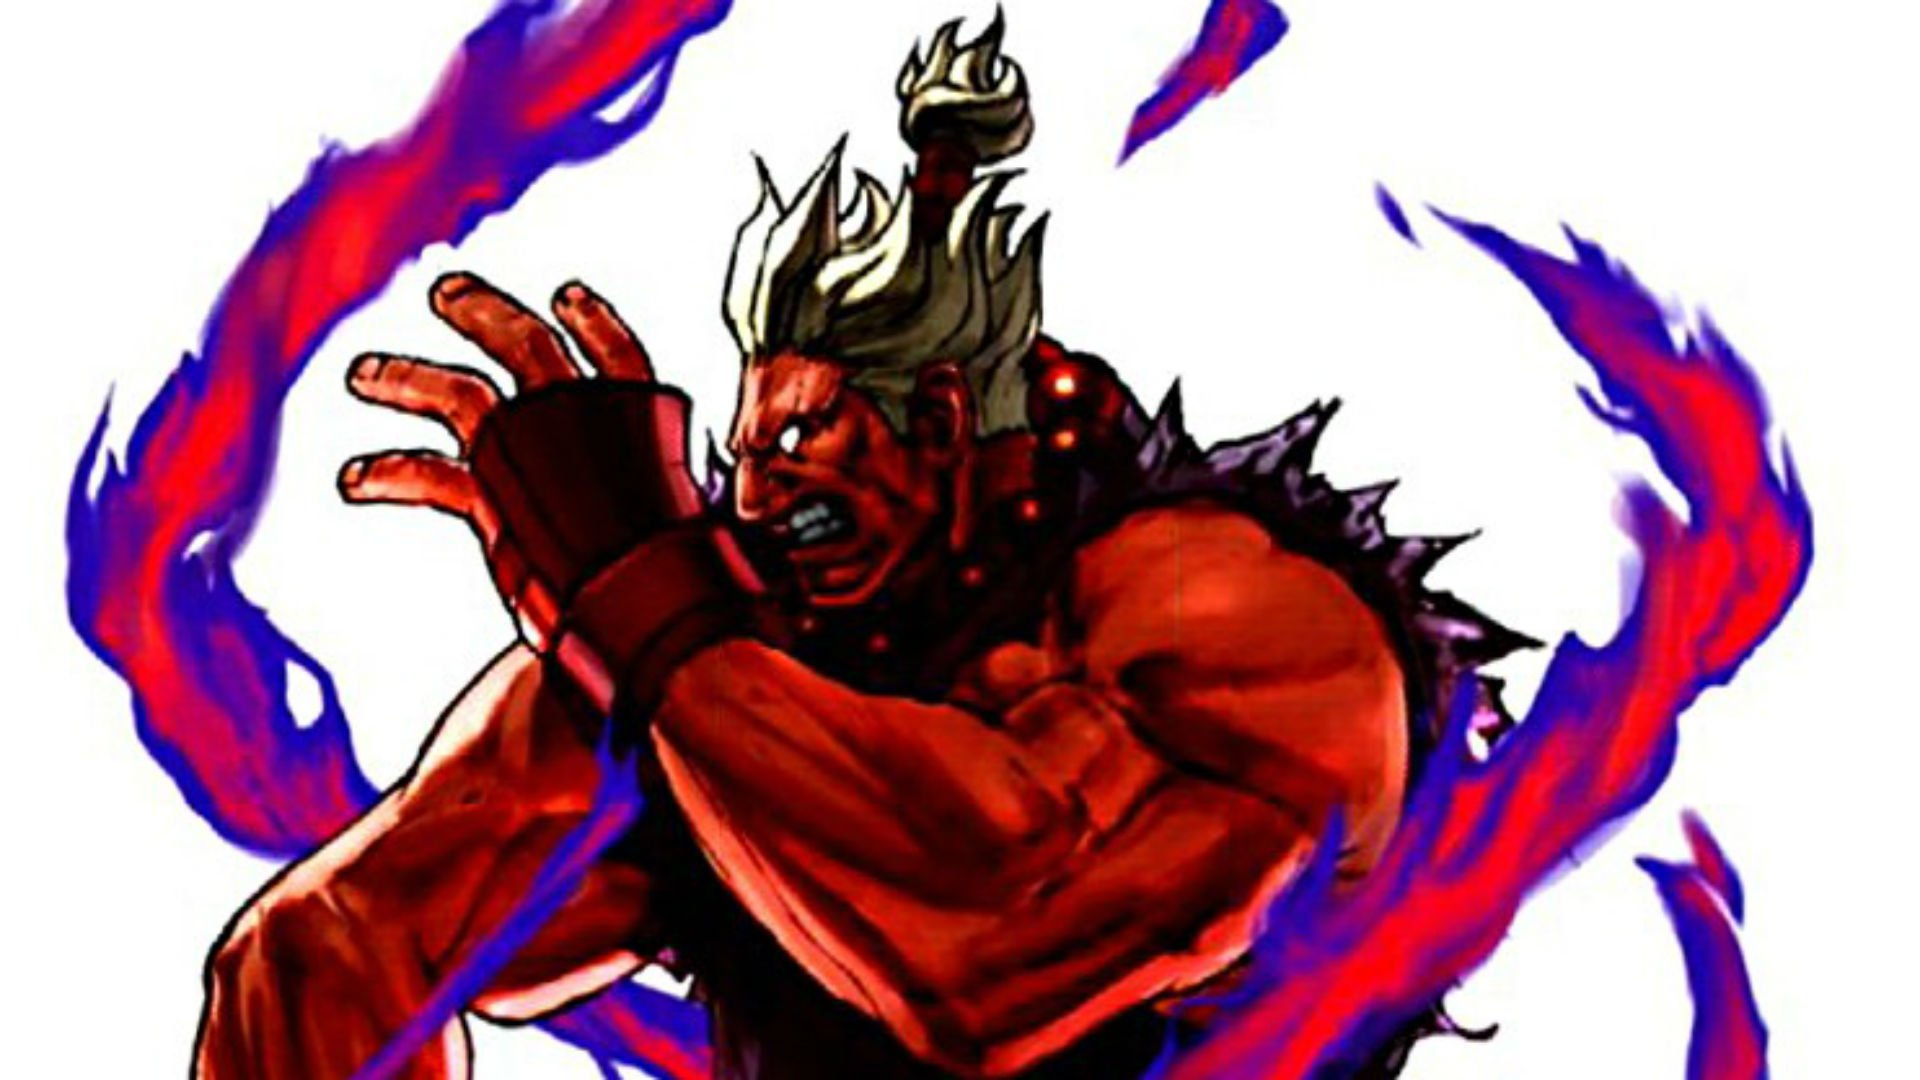 You can unlock Shin Akuma in Ultra Street Fighter II: The Final Challengers with a special code screenshot